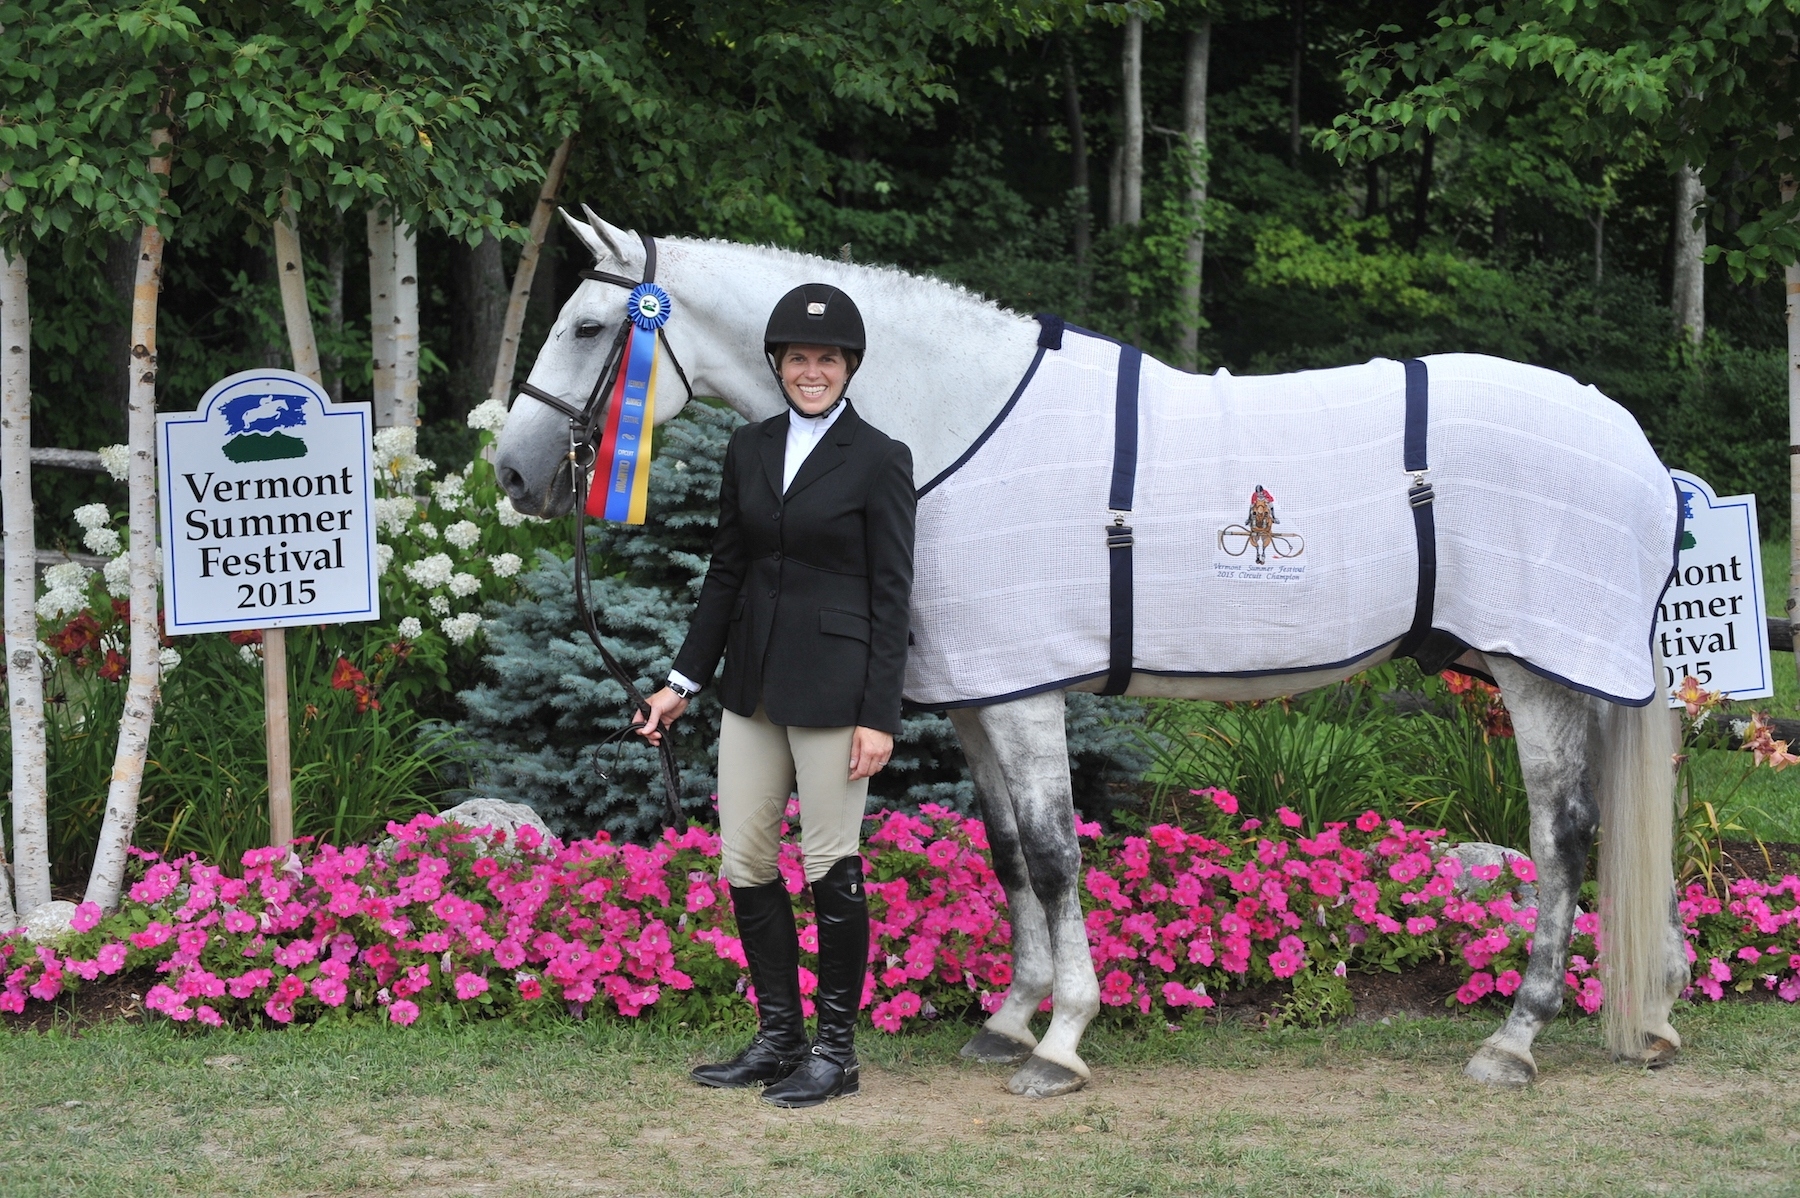 Hallie Brooks and Nick O' Time are presented as the Circuit Champion in the Adult Equitation division at the 2015 Vermont Summer Festival.<br><b>Photo by <a href='http://www.photoreflect.com/home/default.aspx' target='_blank'>David Mullinix Photography</a></b>